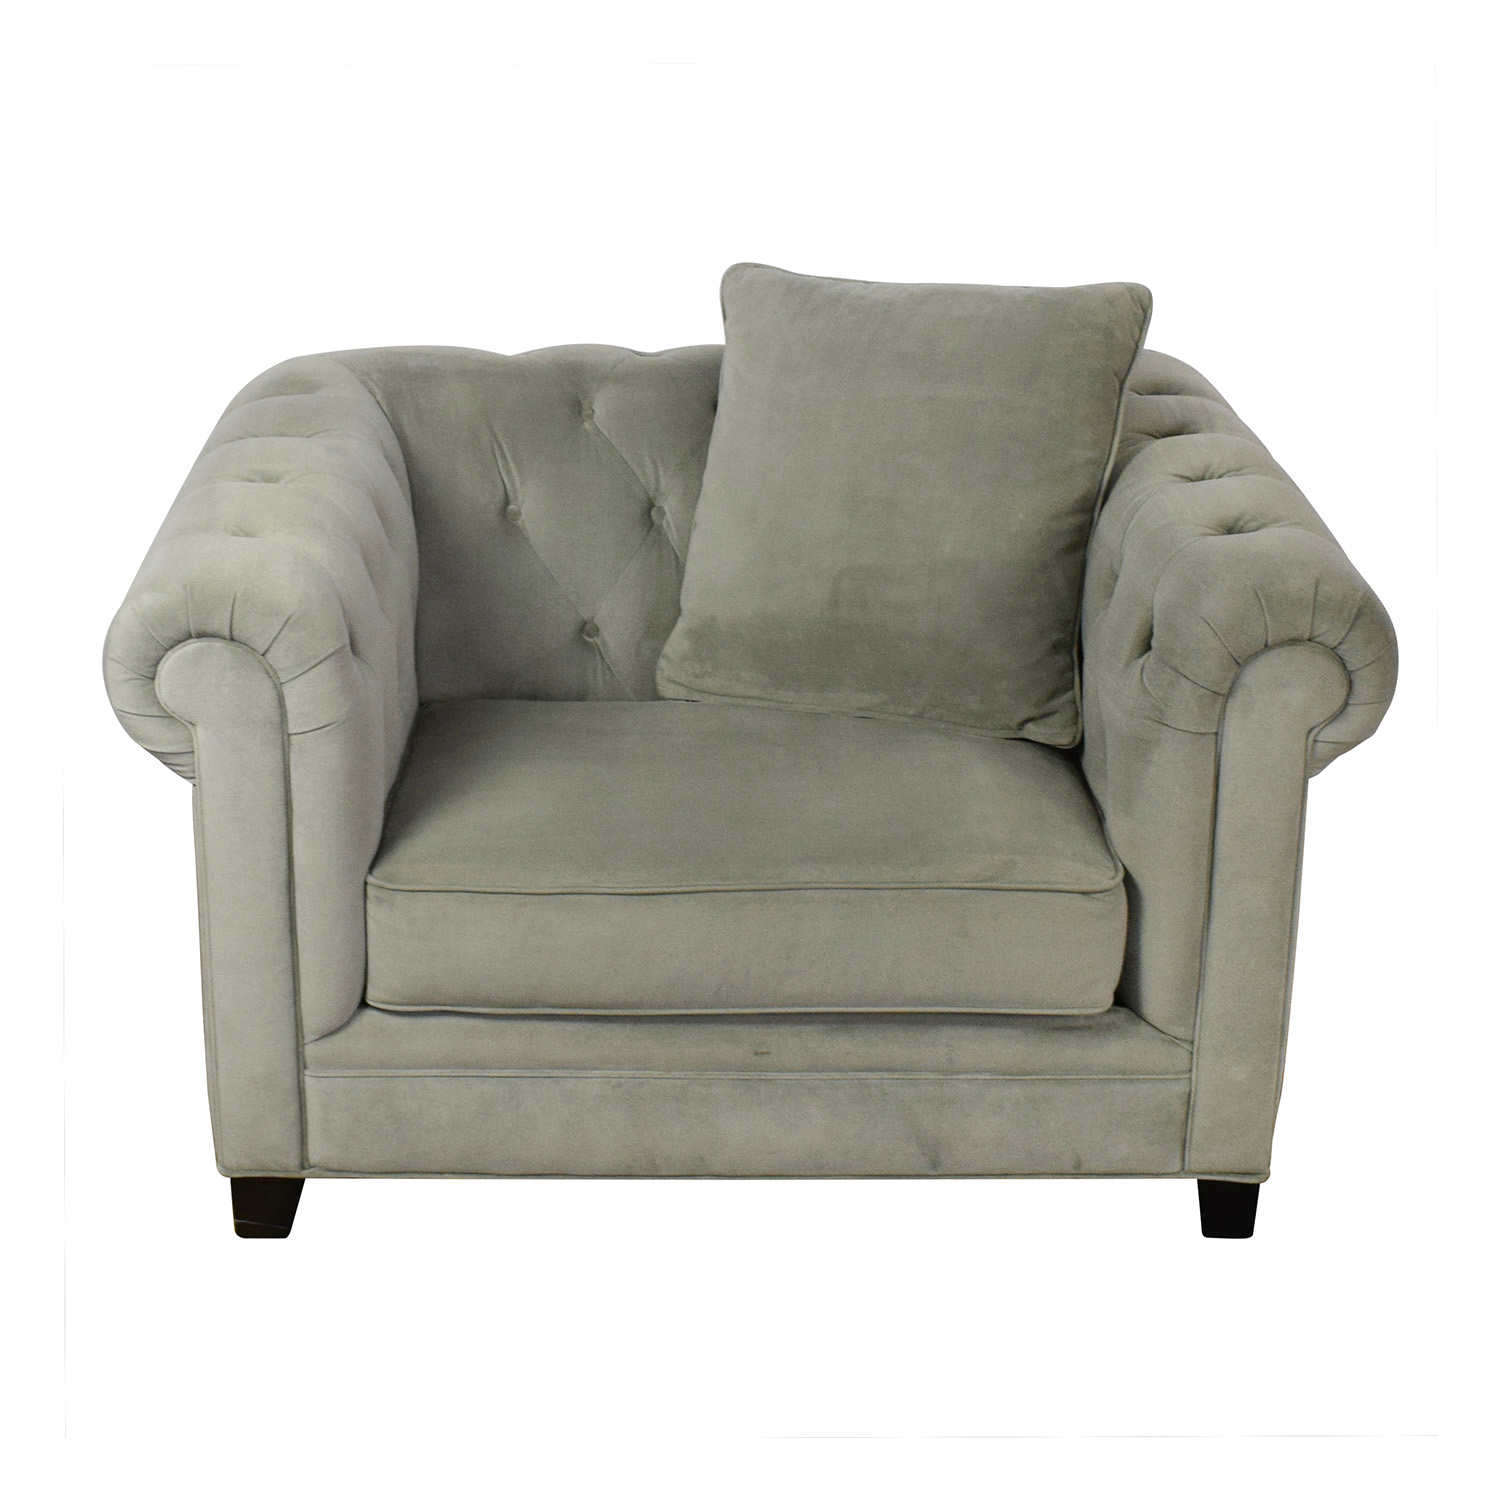 Martha Stewart Collection Martha Stewart Saybridge Tufted Accent Chair for sale